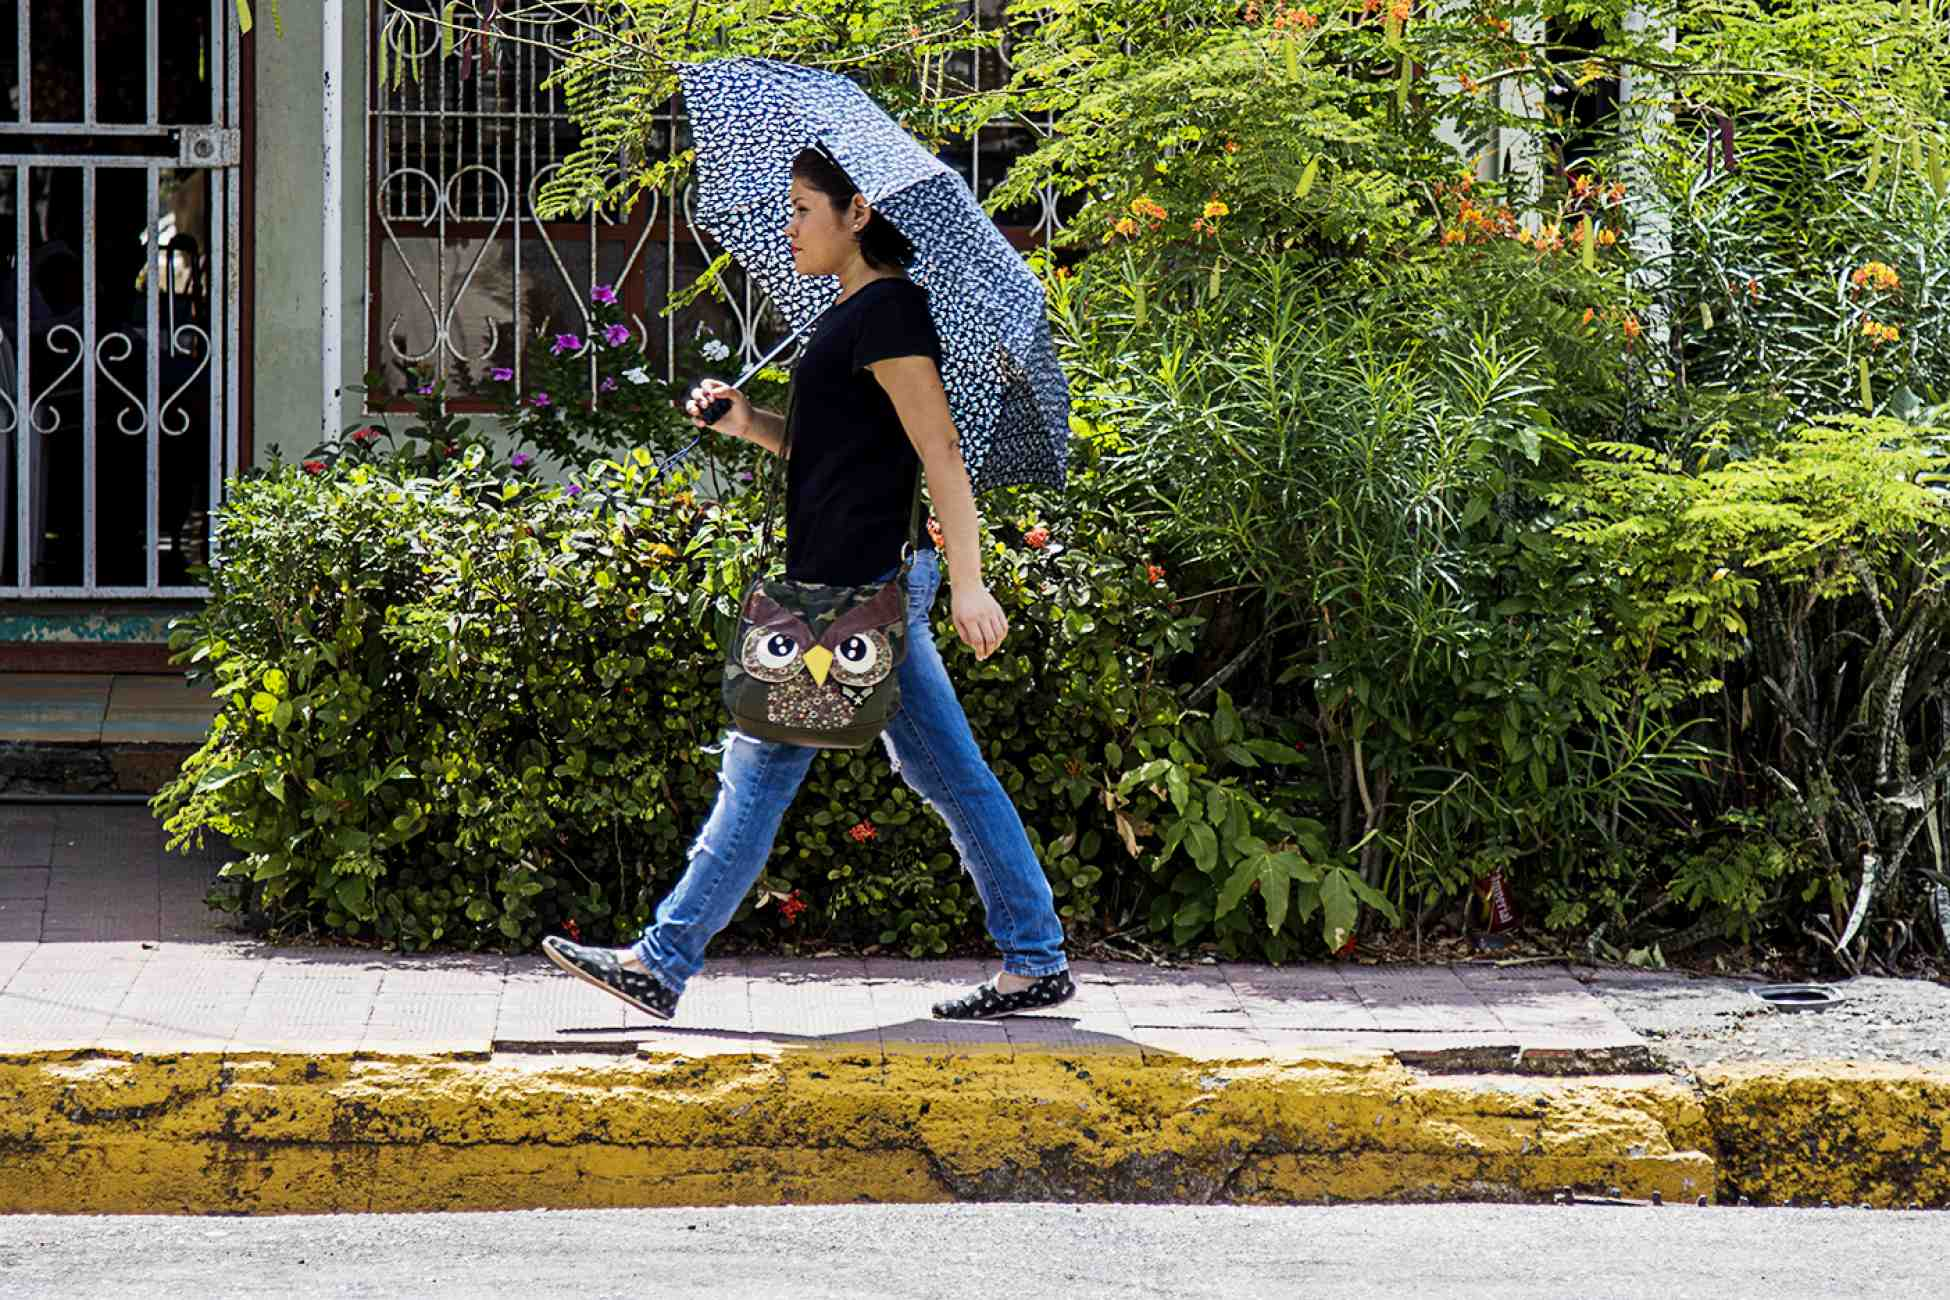 Although there are more than two months to go before it rains, it is common to see women walking with umbrellas to protect themselves from the sun's strong rays, a typical scene in the streets of Guanacaste. Photo Ariana Crespo